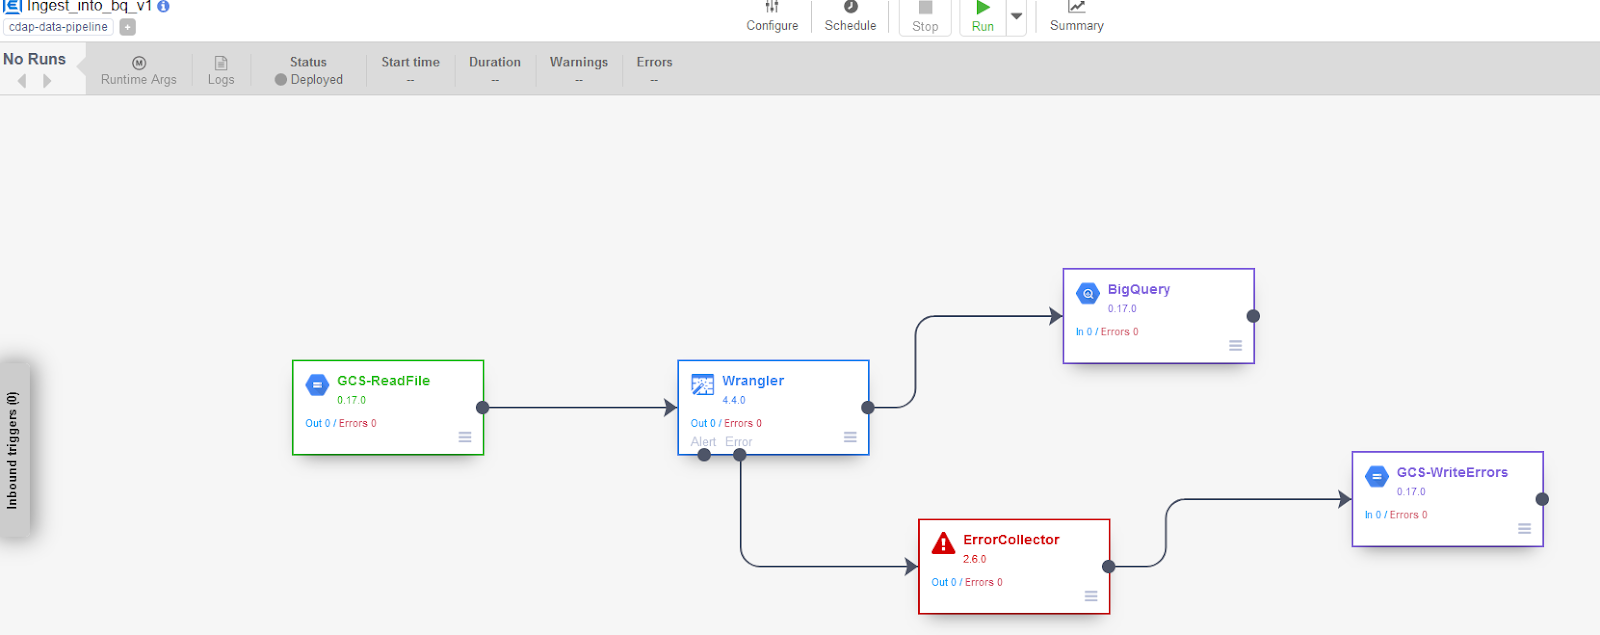 umair-akbar-0*ZvEZqGT38 aIng08 - End-to-end automated Analytics workload using Cloud Functions — Data Fusion — BigQuery and Data Studio